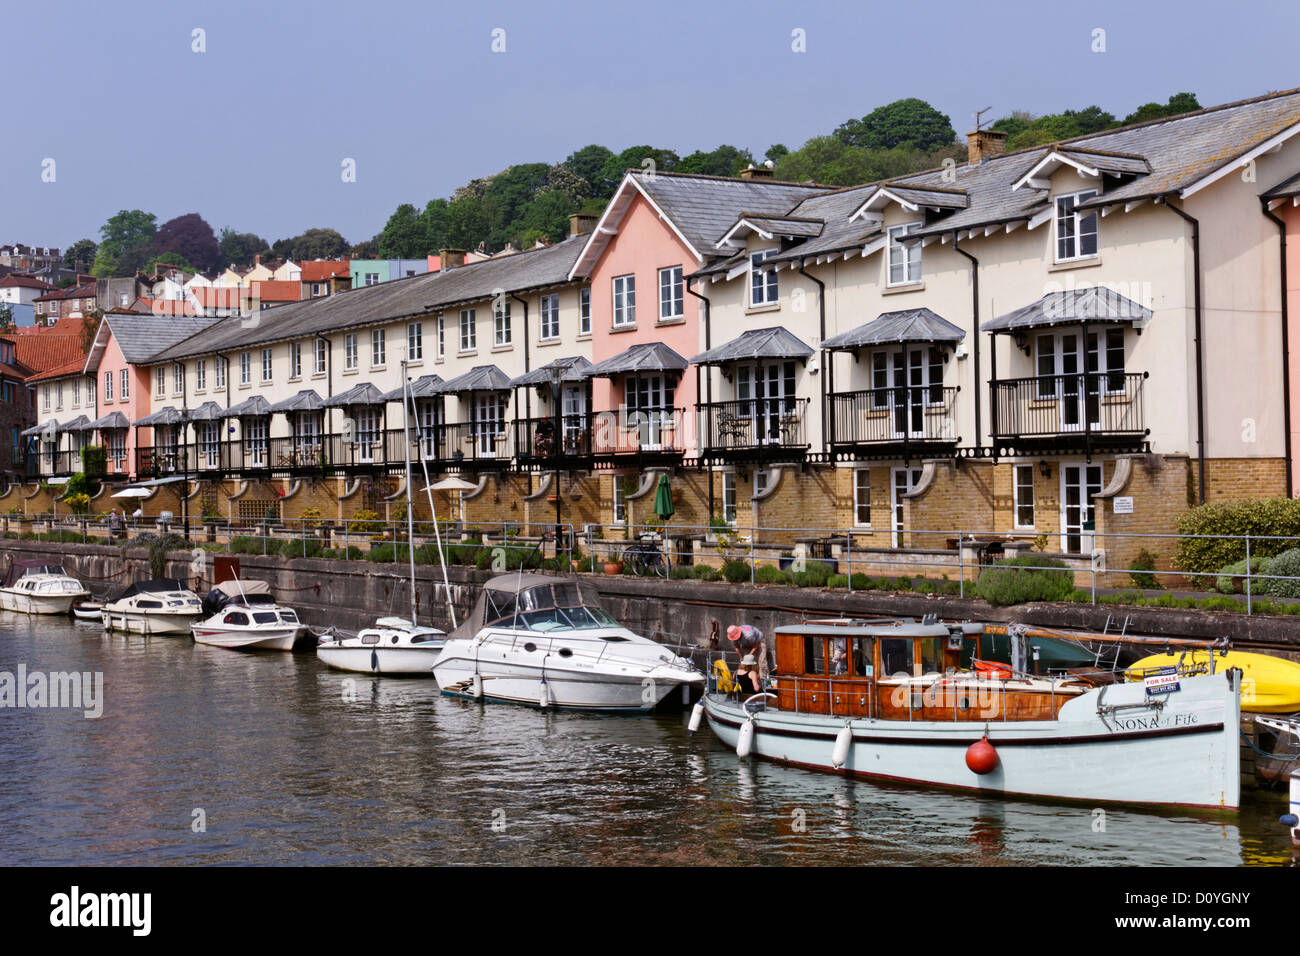 Boats And Houses At Harbourside Bristol Somerset England Stock Photo Royalty Free Image